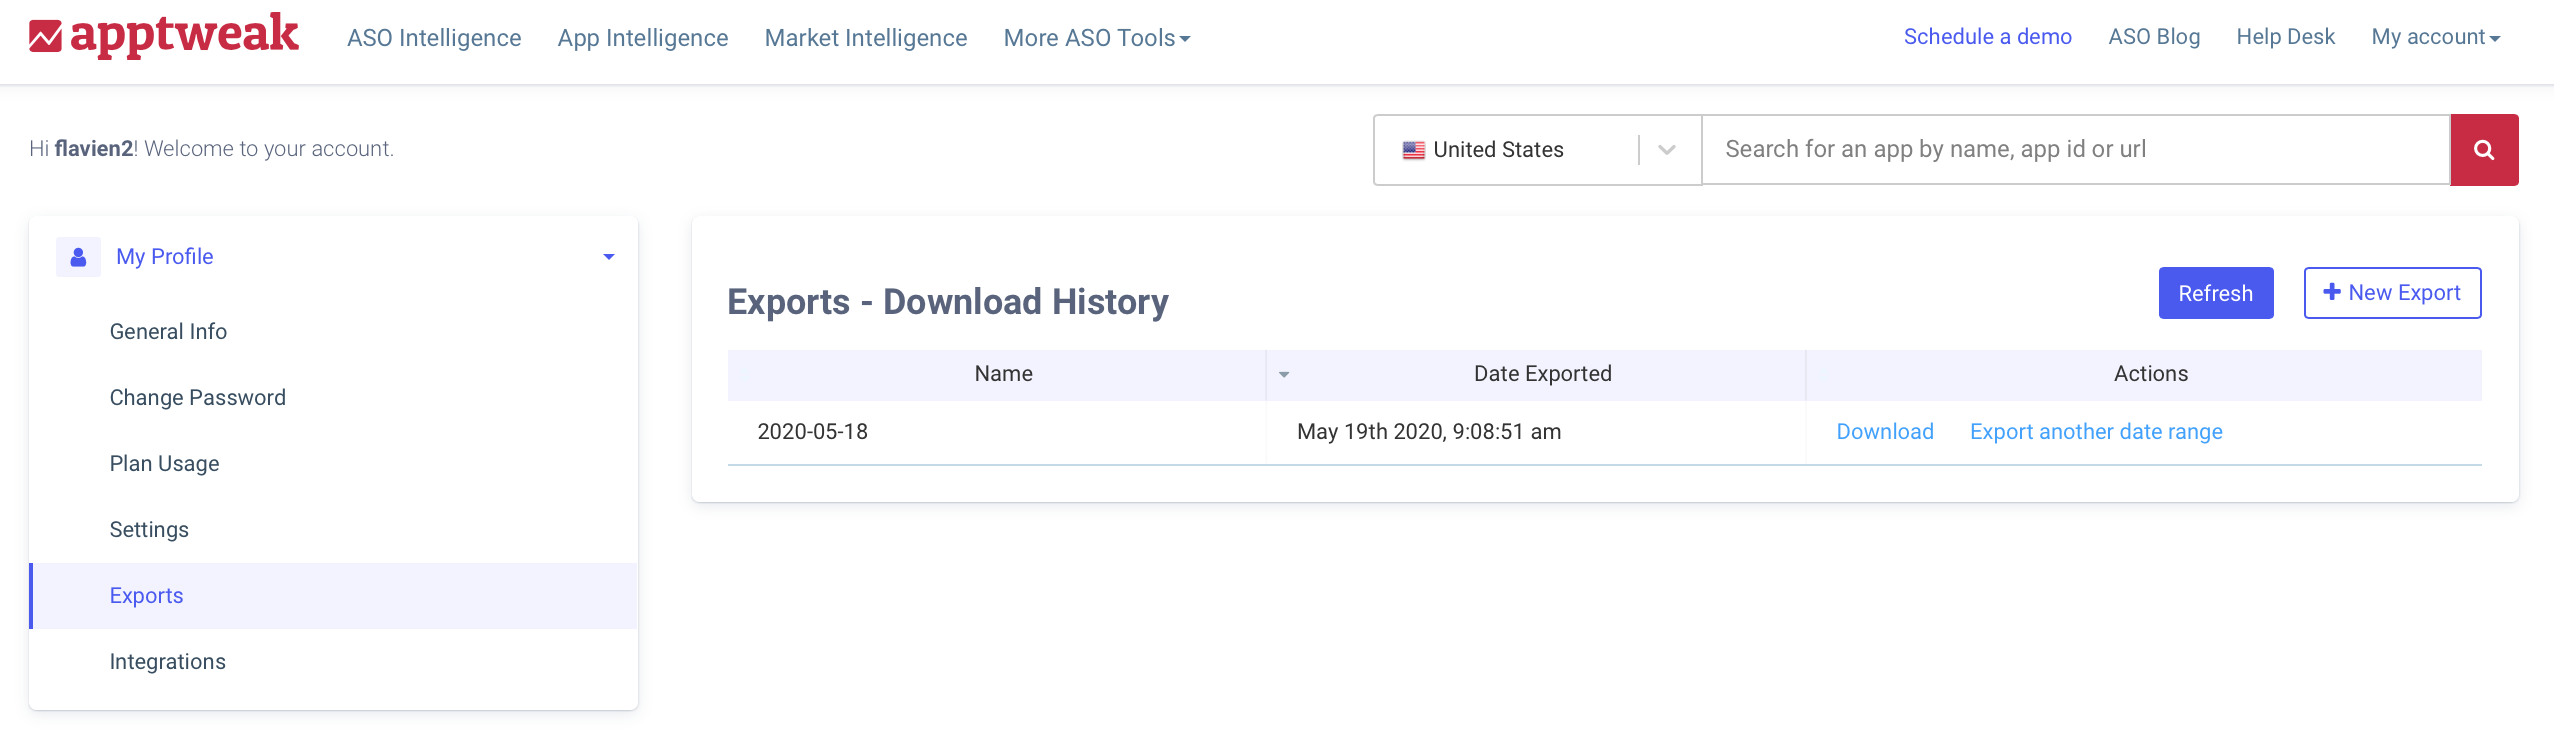 AppTweak ASO Tool: Export interface